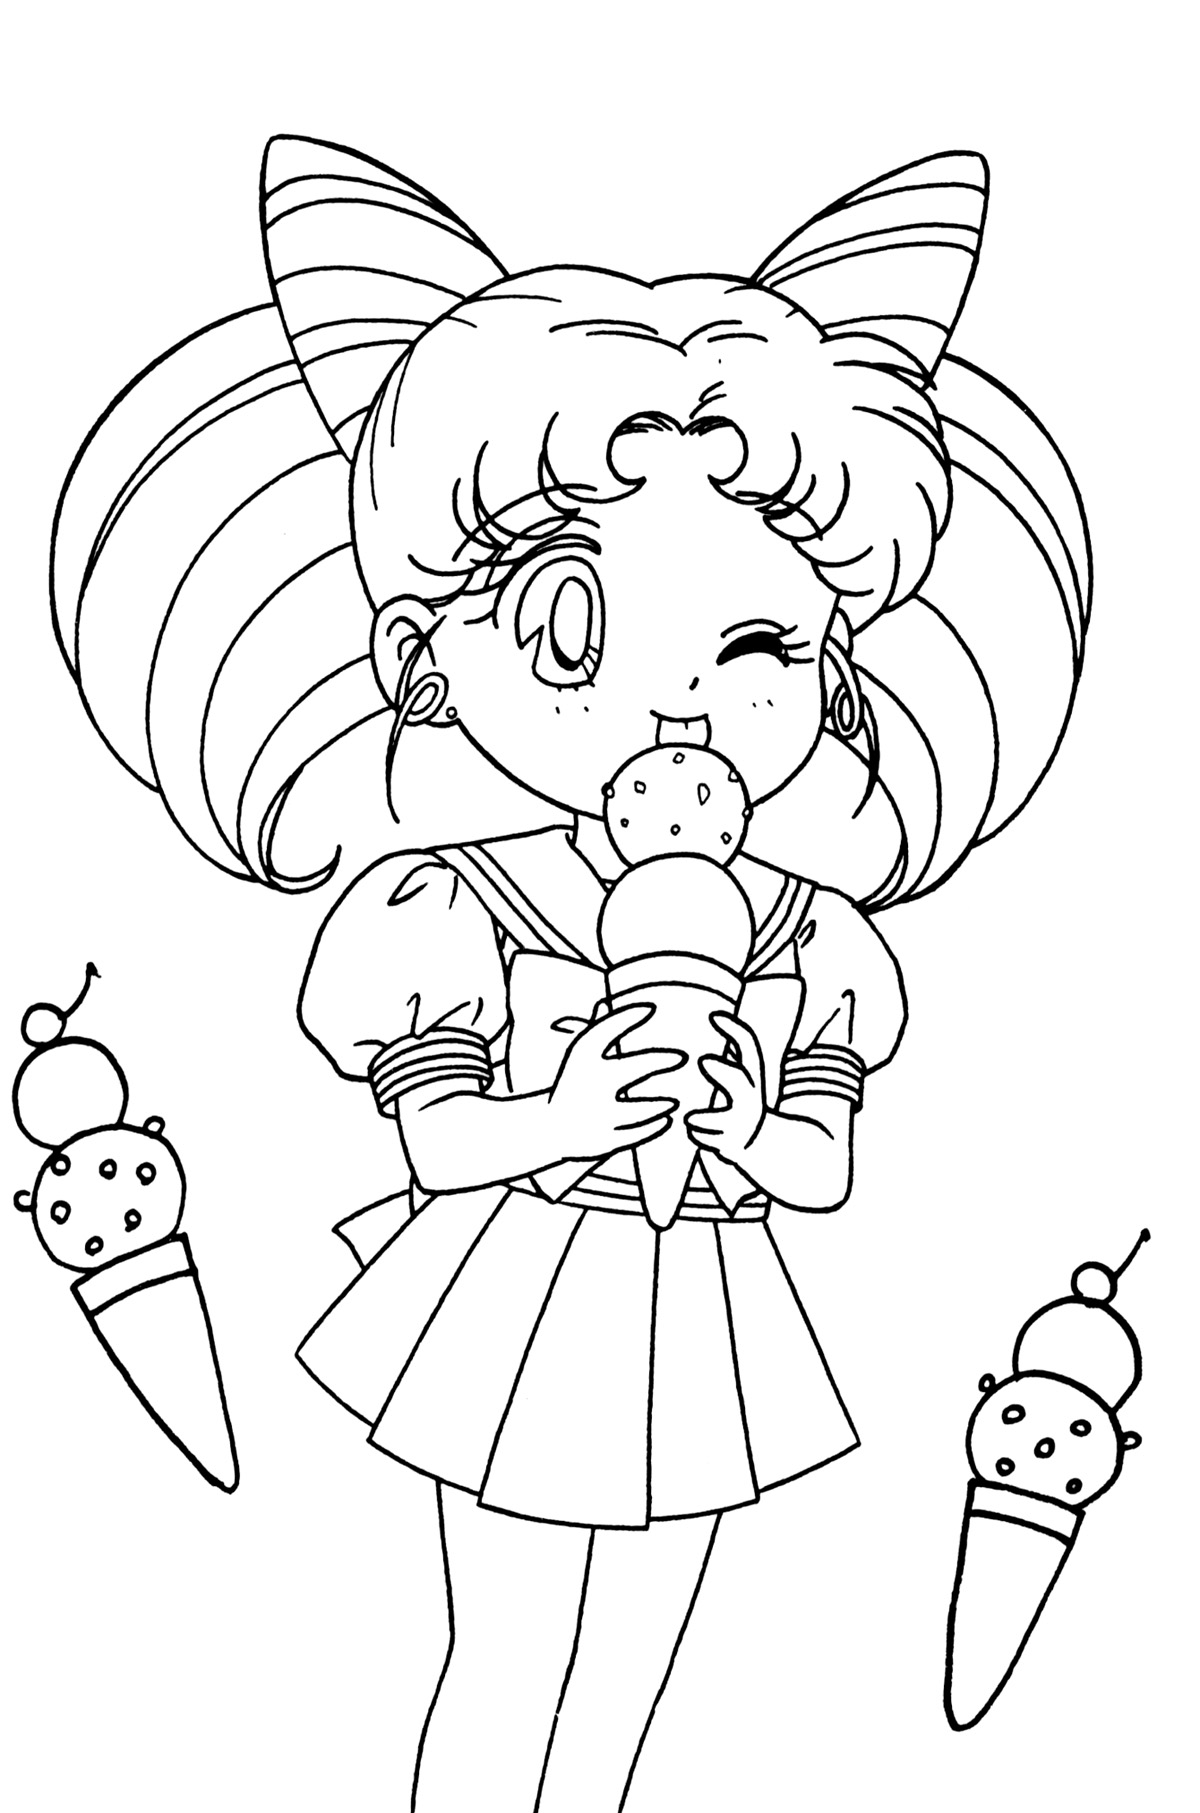 chibi moon coloring pages - photo#18